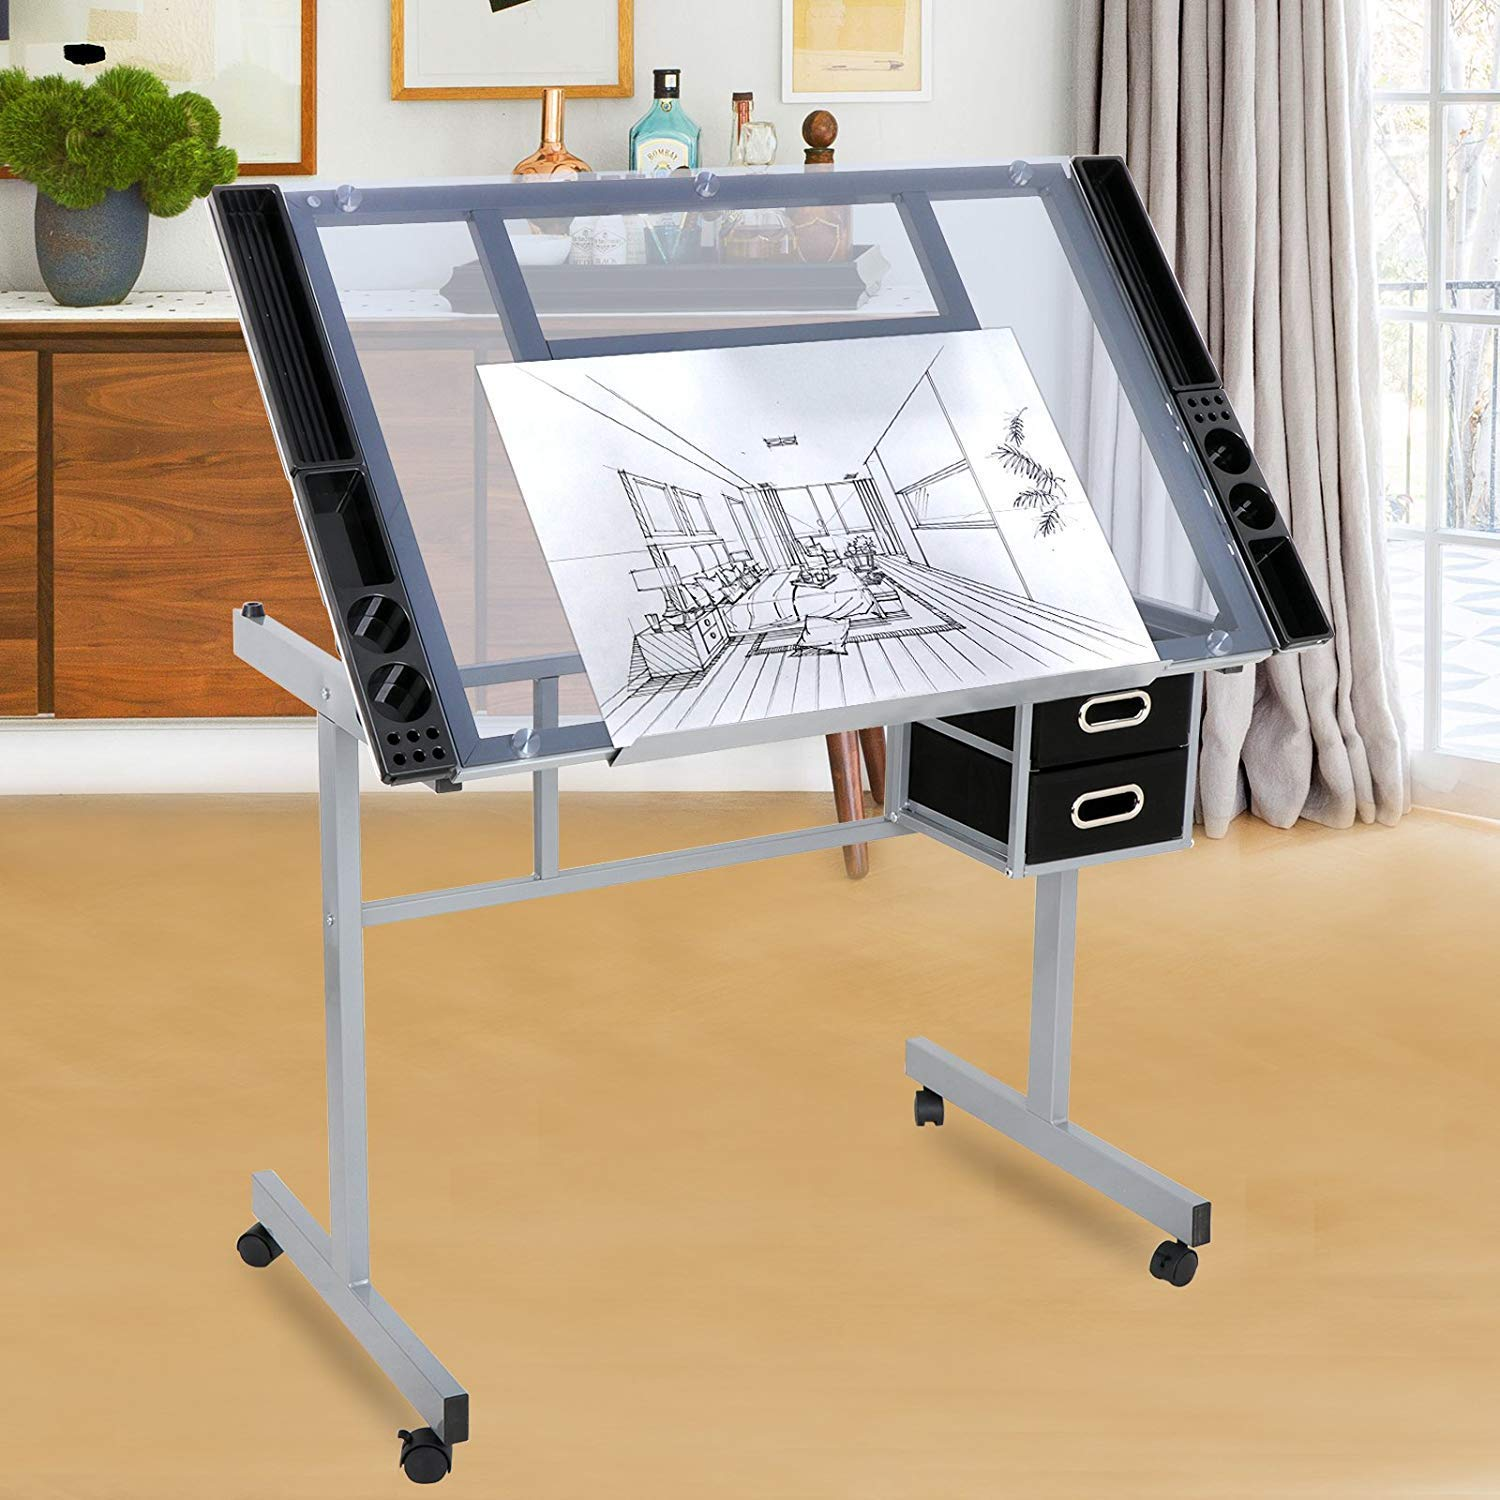 HomGarden Glass Top Height Adjustable Drawing Desk Art Craft Station Drafting Table Home Office Workstation w/Drawers and Wheels by HomGarden